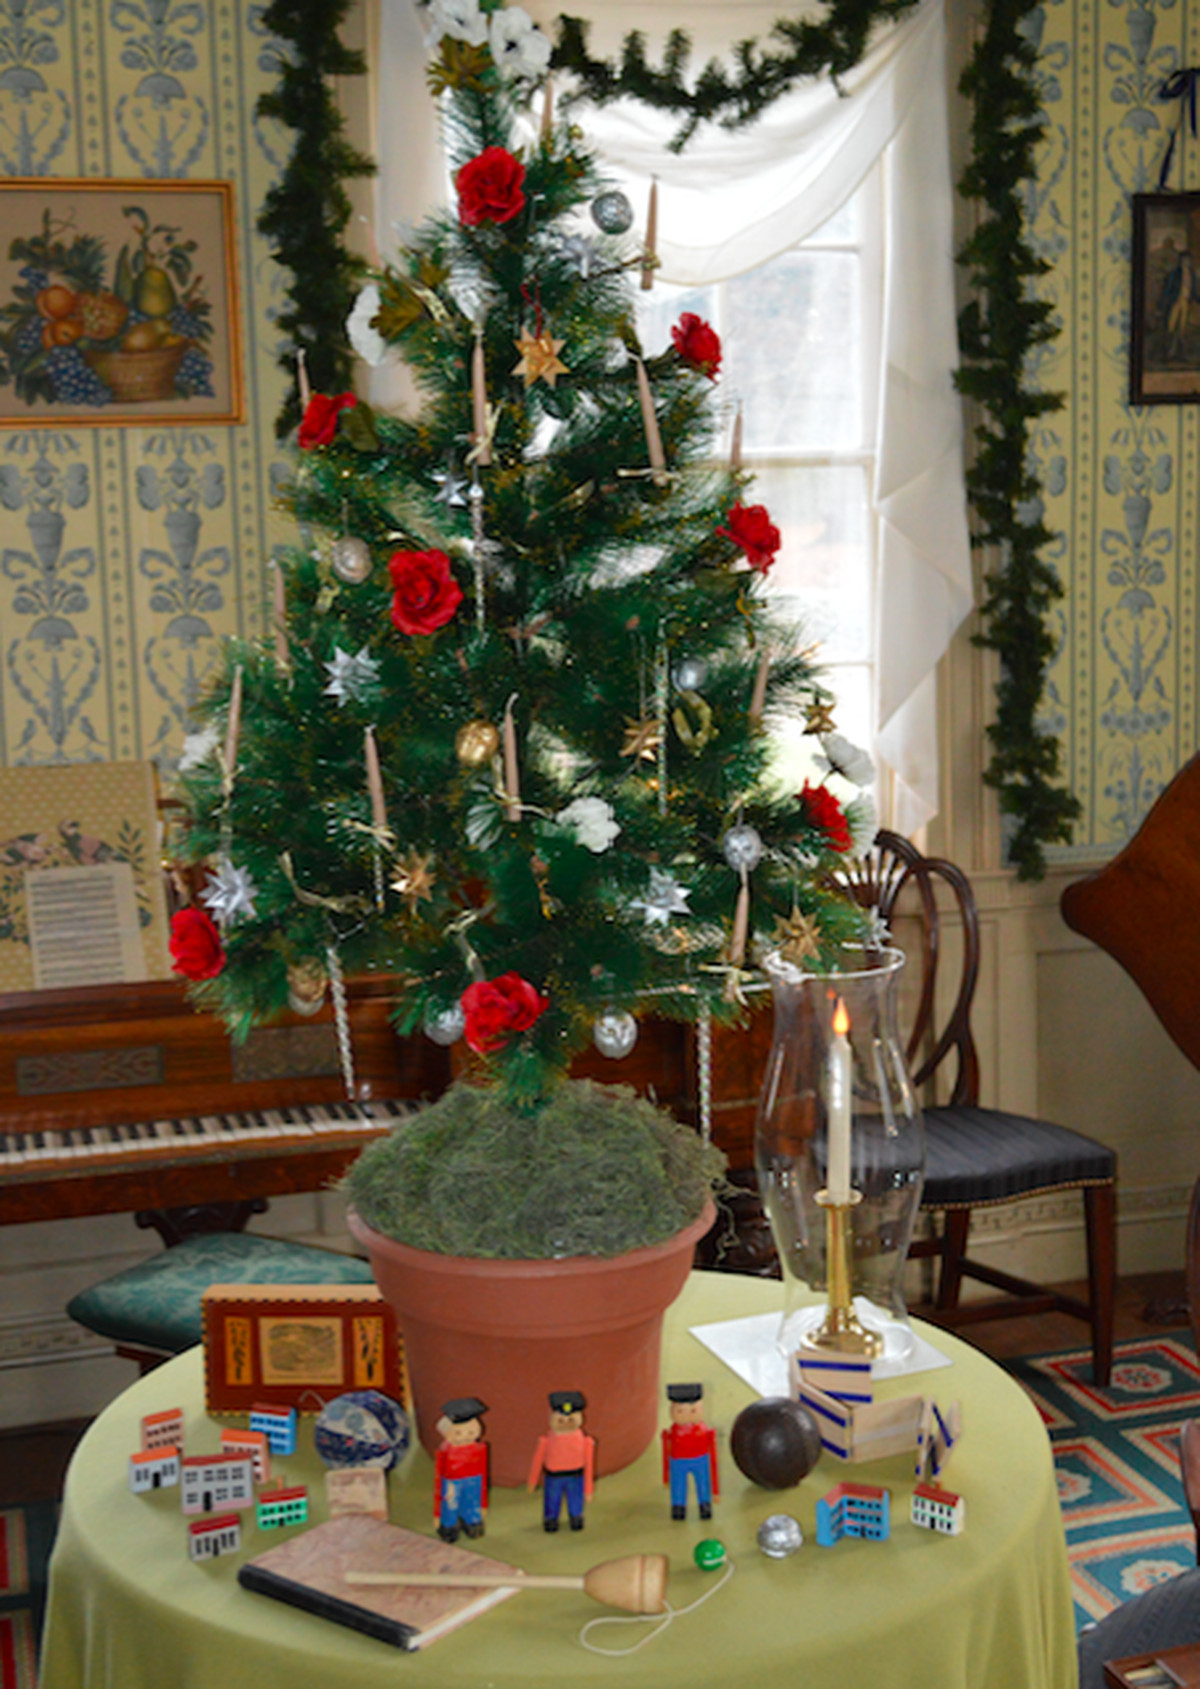 How Christmas decorations evolved through the 1800s - Curbed